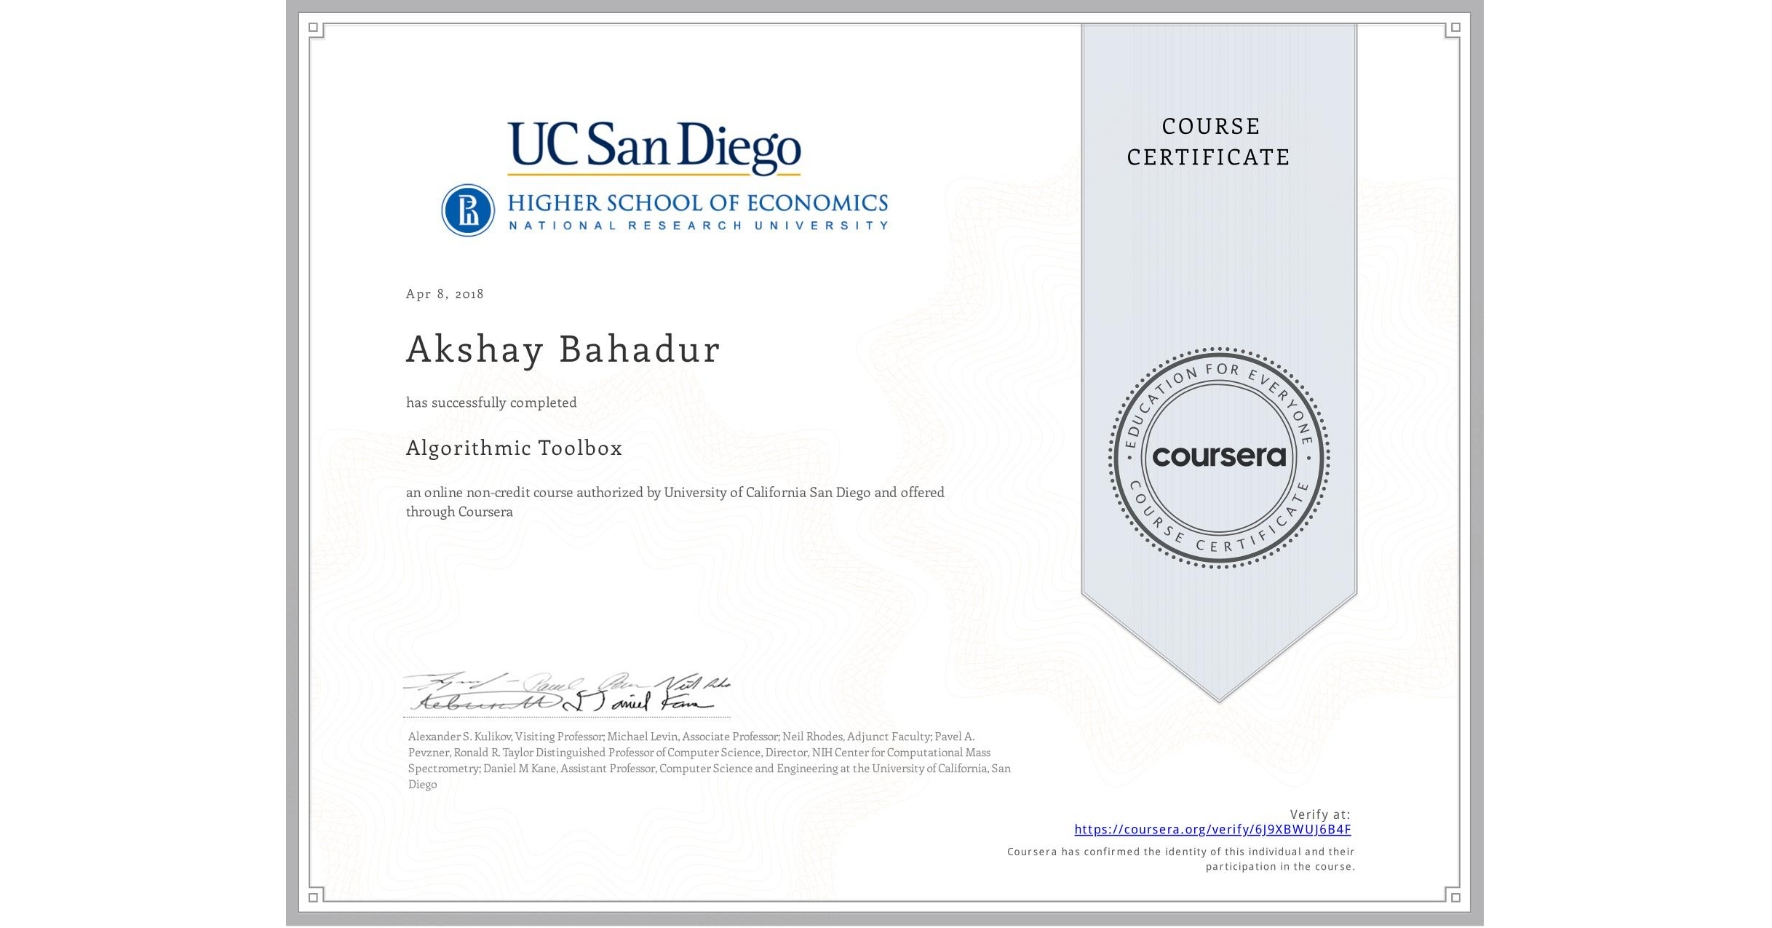 View certificate for Akshay Bahadur, Algorithmic Toolbox, an online non-credit course authorized by University of California San Diego & National Research University Higher School of Economics and offered through Coursera